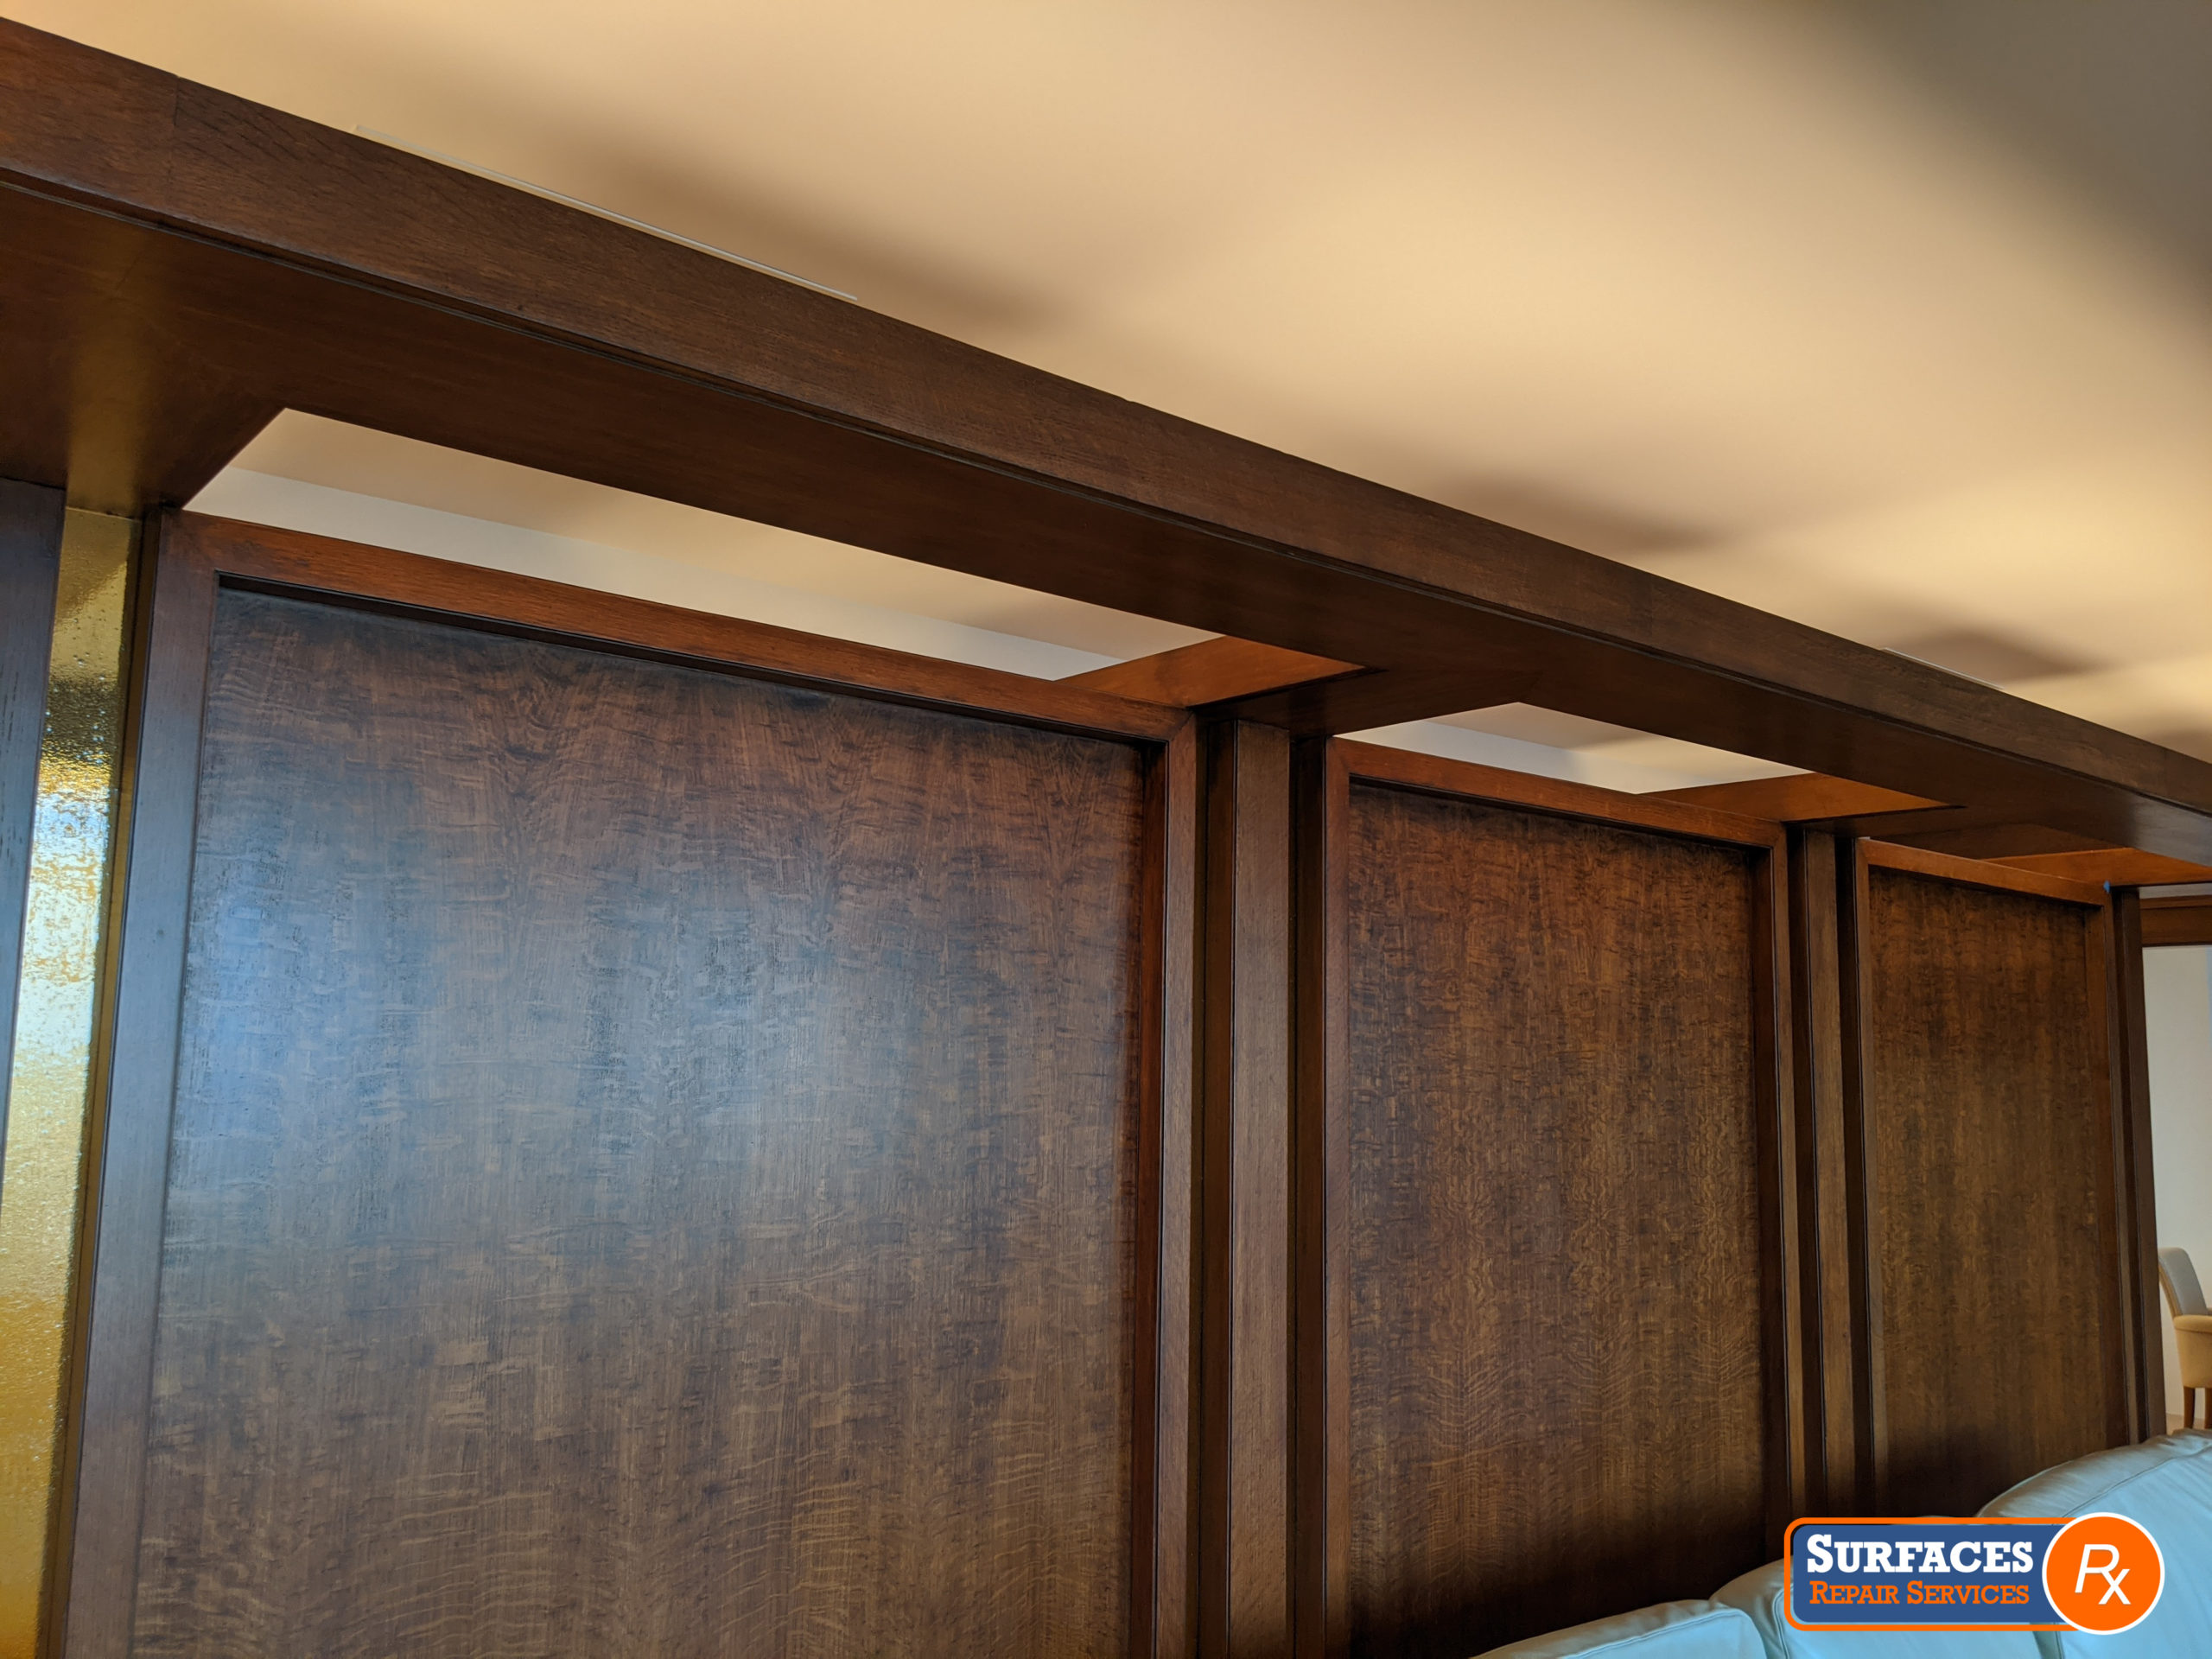 Dallas Millwork Refinishing by Surfaces Rx